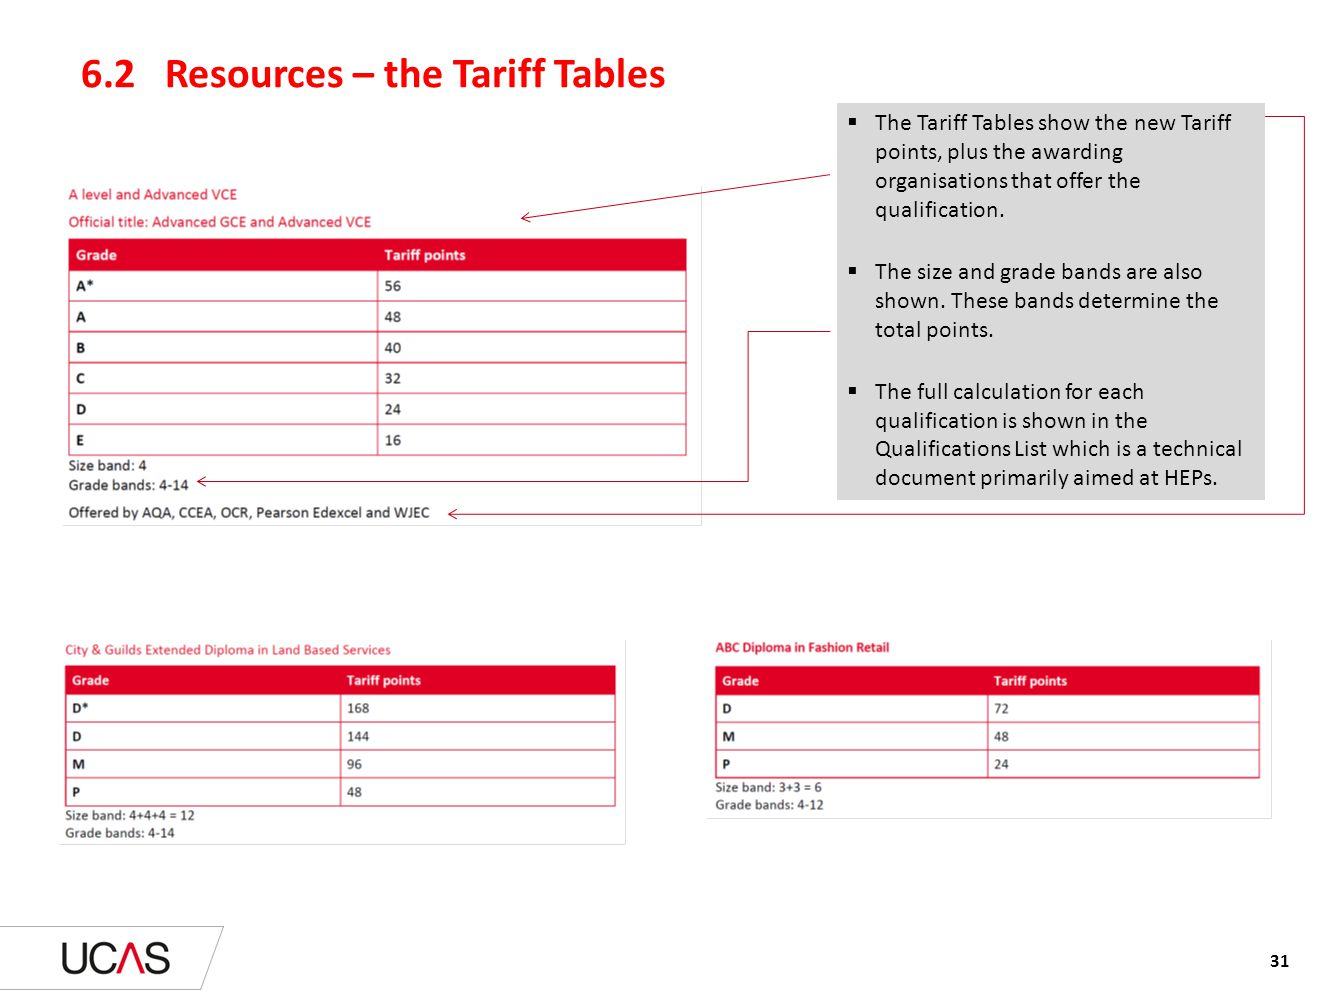 6.2 Resources – the Tariff Tables